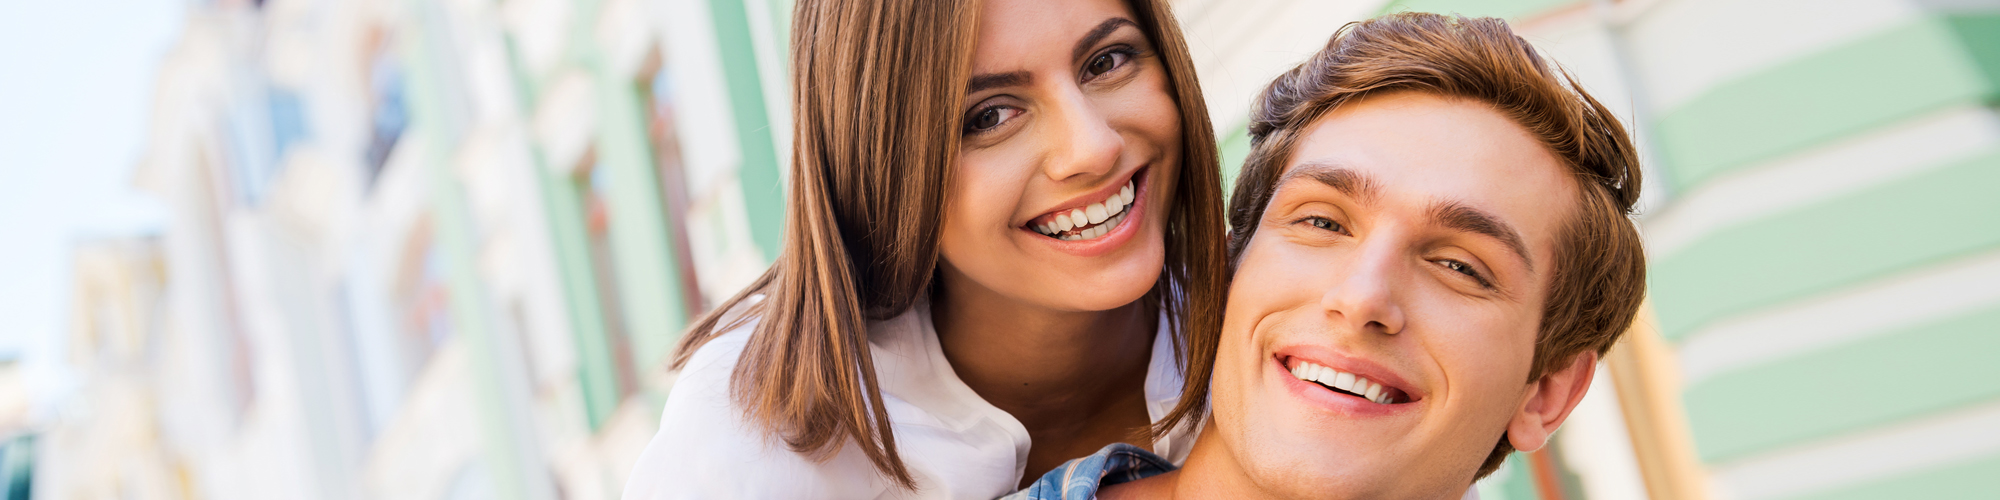 Composite Fillings in Deerfield IL - Image of women and man smiling